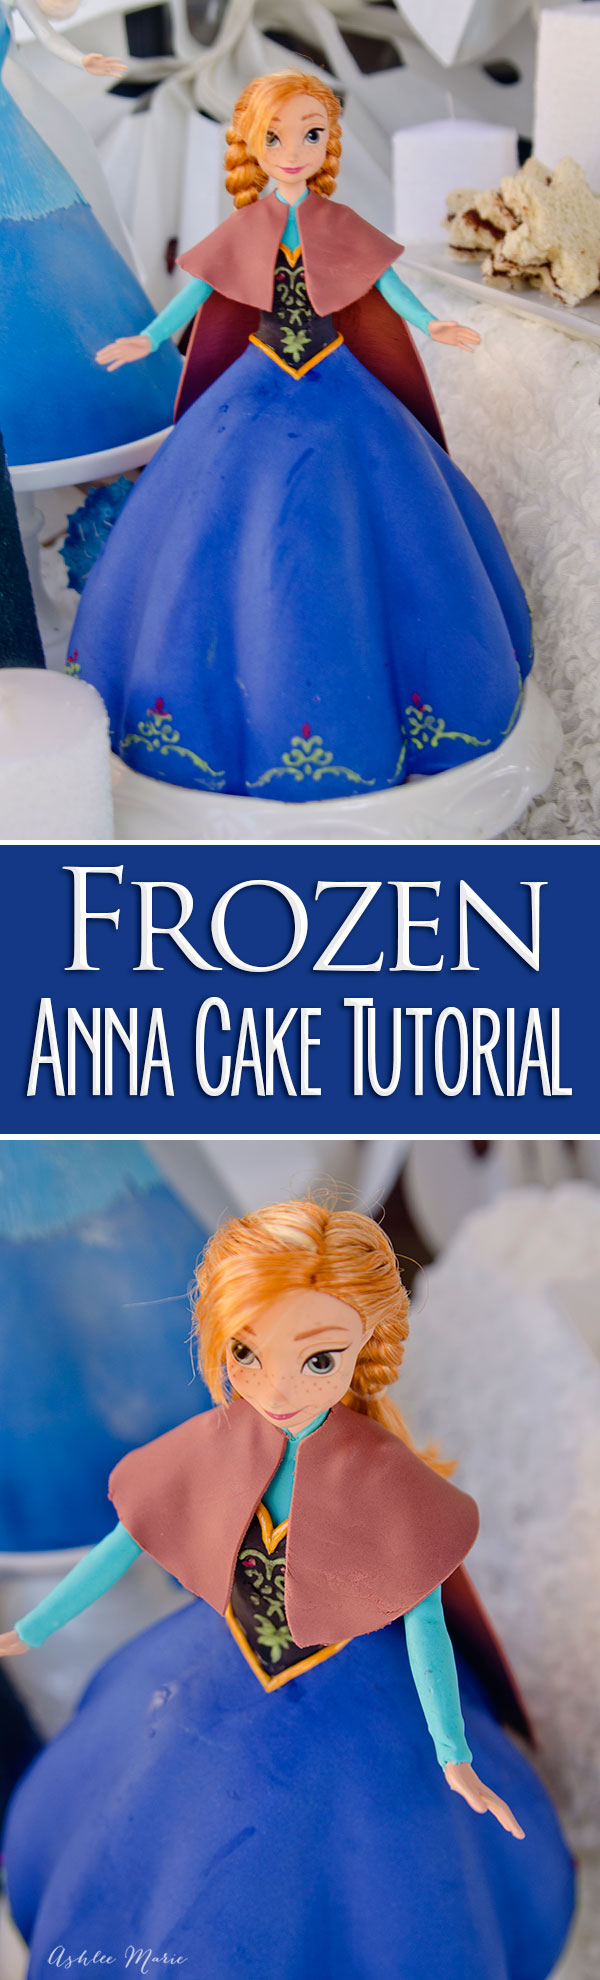 make your own princess anna cake with this full tutorial, the perfect centerpiece for your frozen birthday party